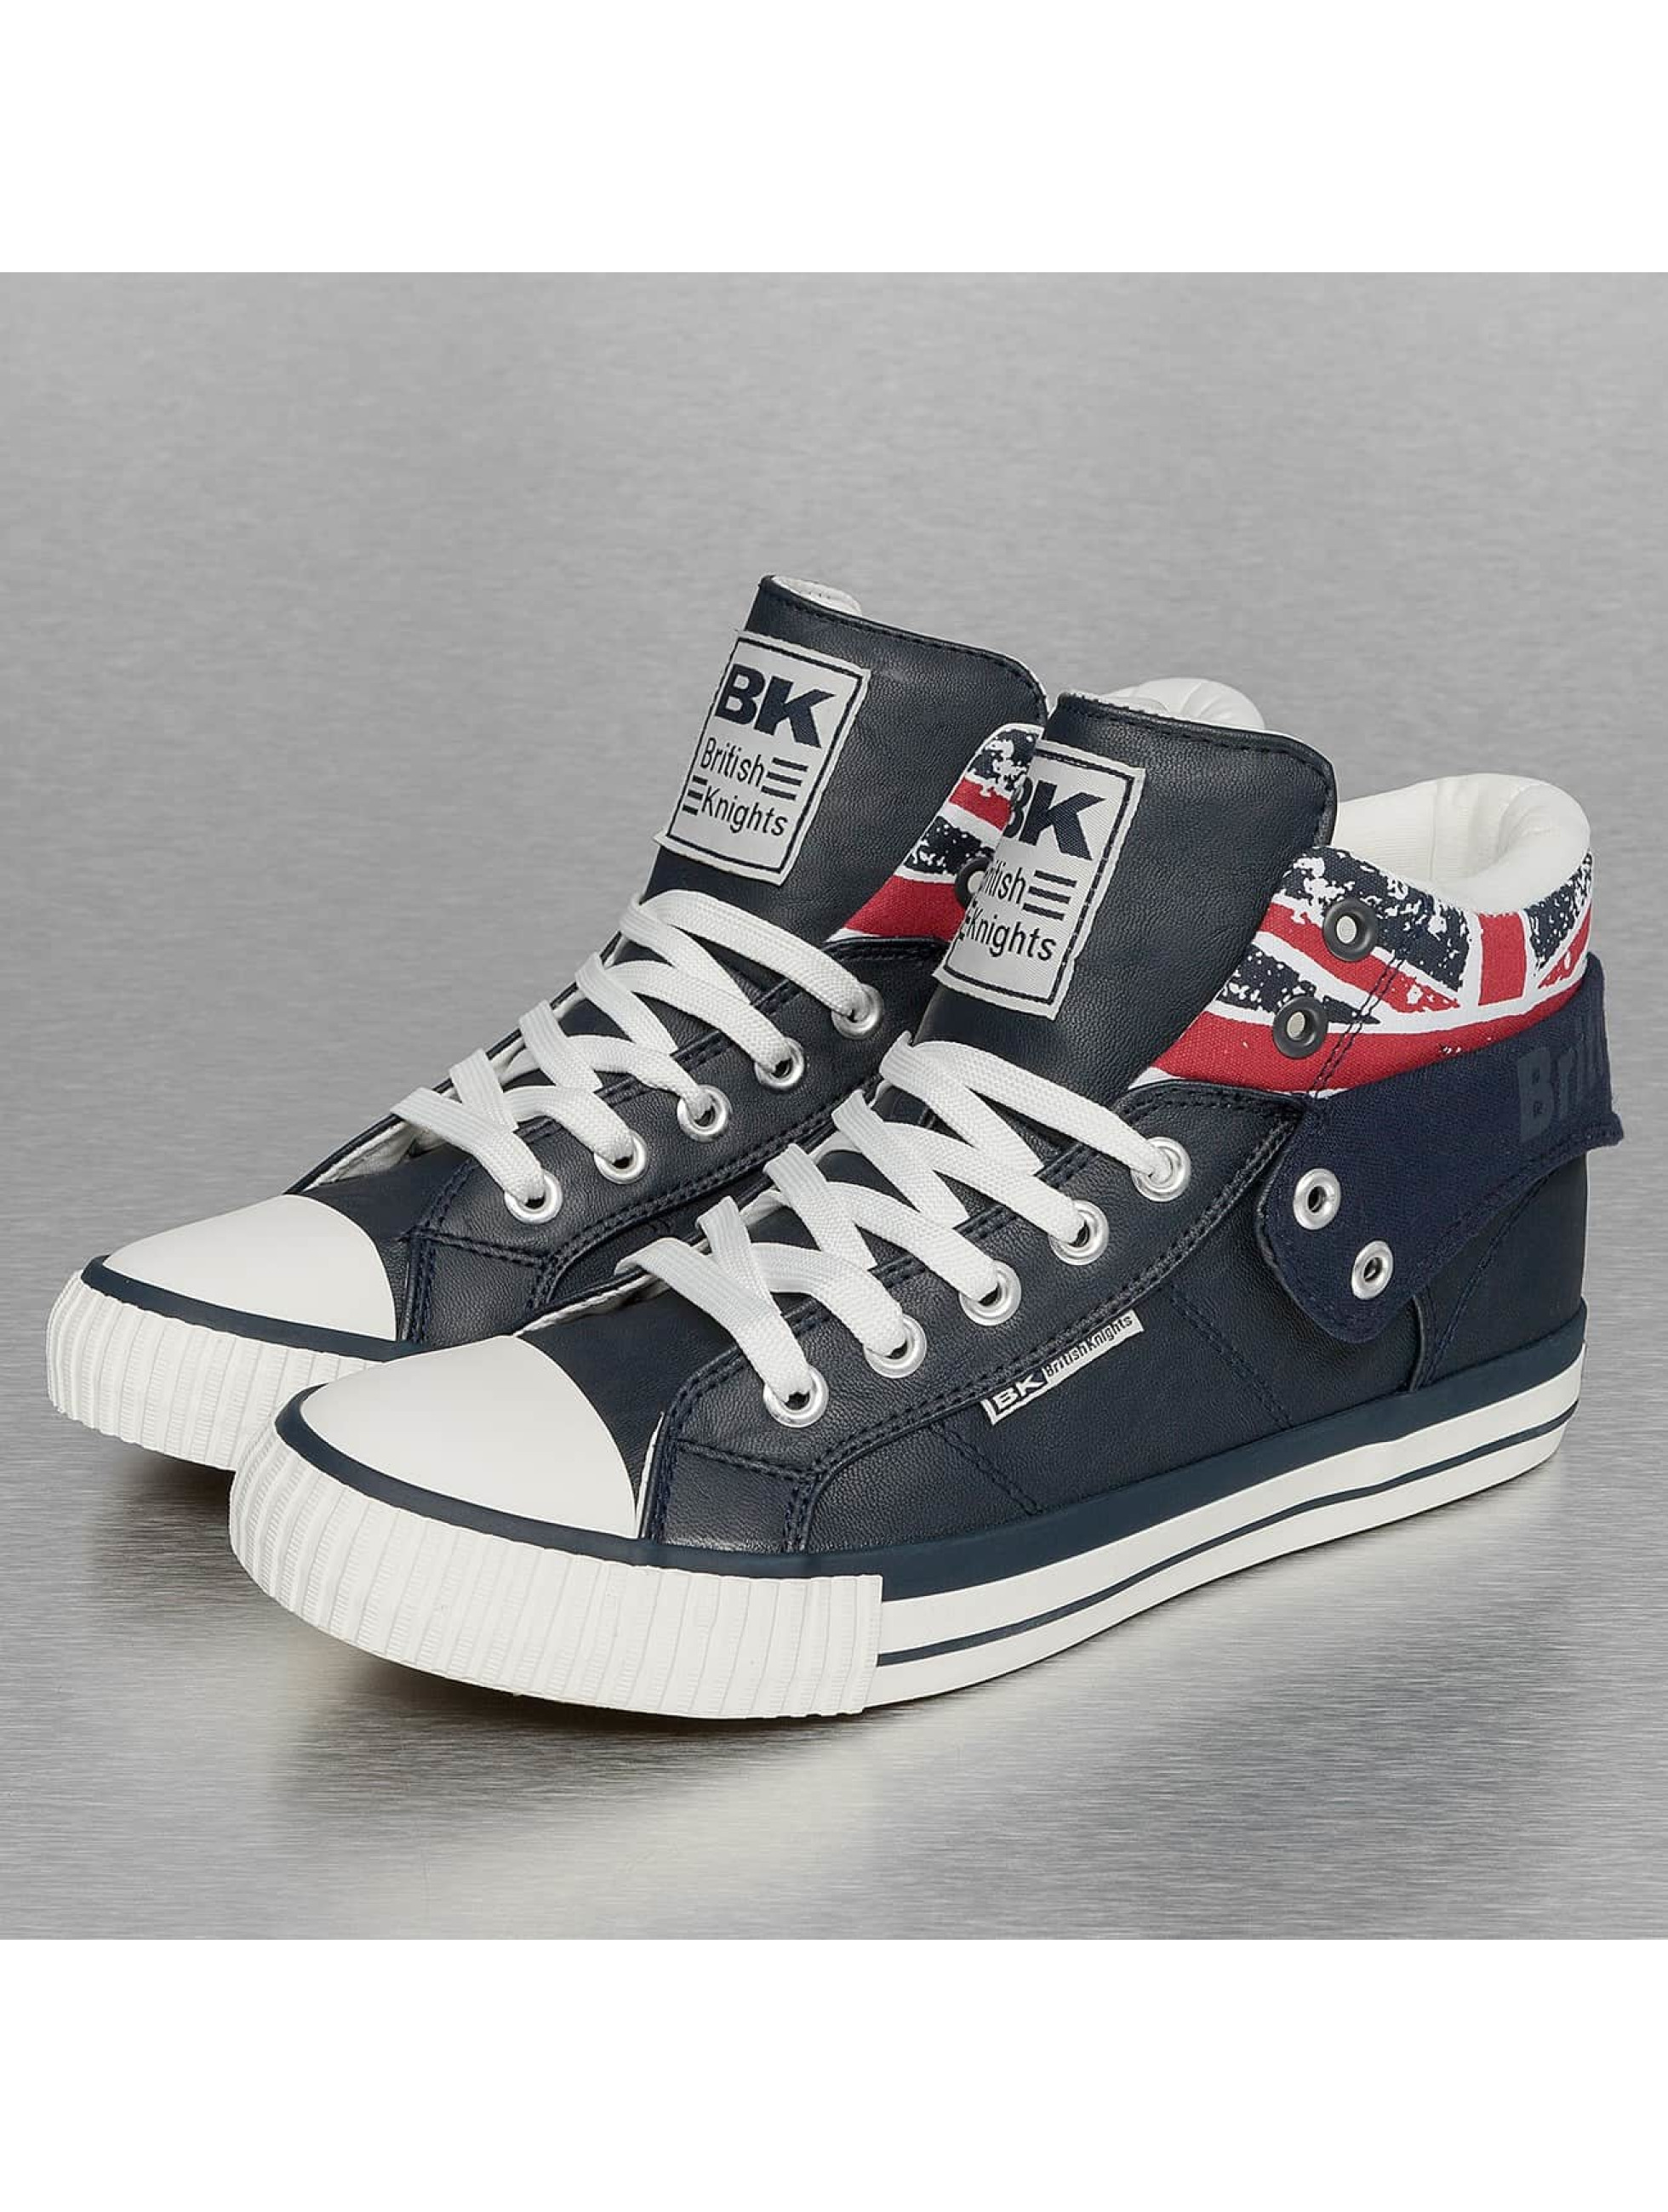 British Knights Sneakers Roco PU Textile blue